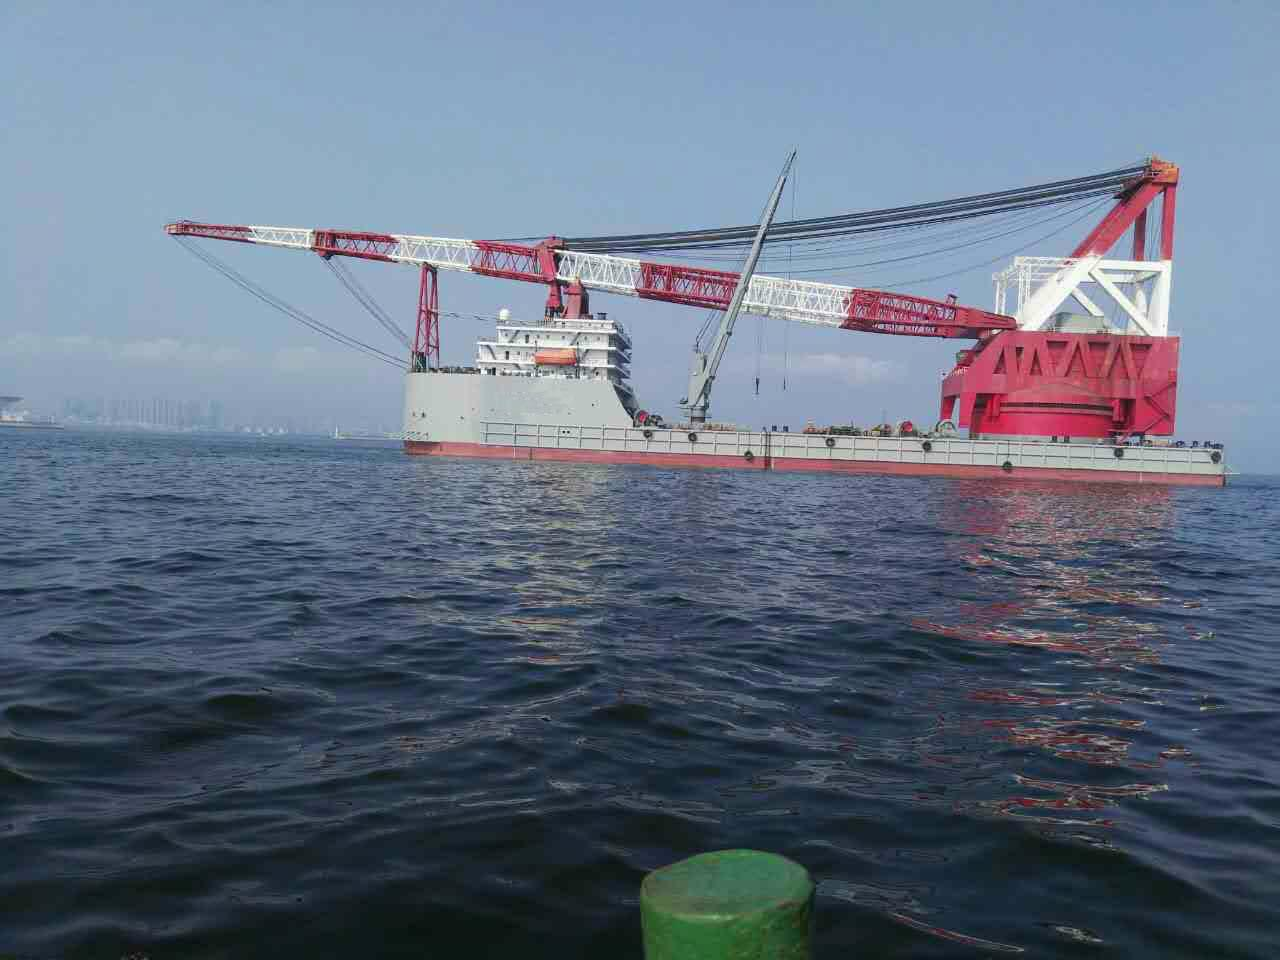 SELL FLOATING CRANE 3800T CRANE BARGE 3800 TON BUY RENT CHARTER SELL SALE 4000T 1